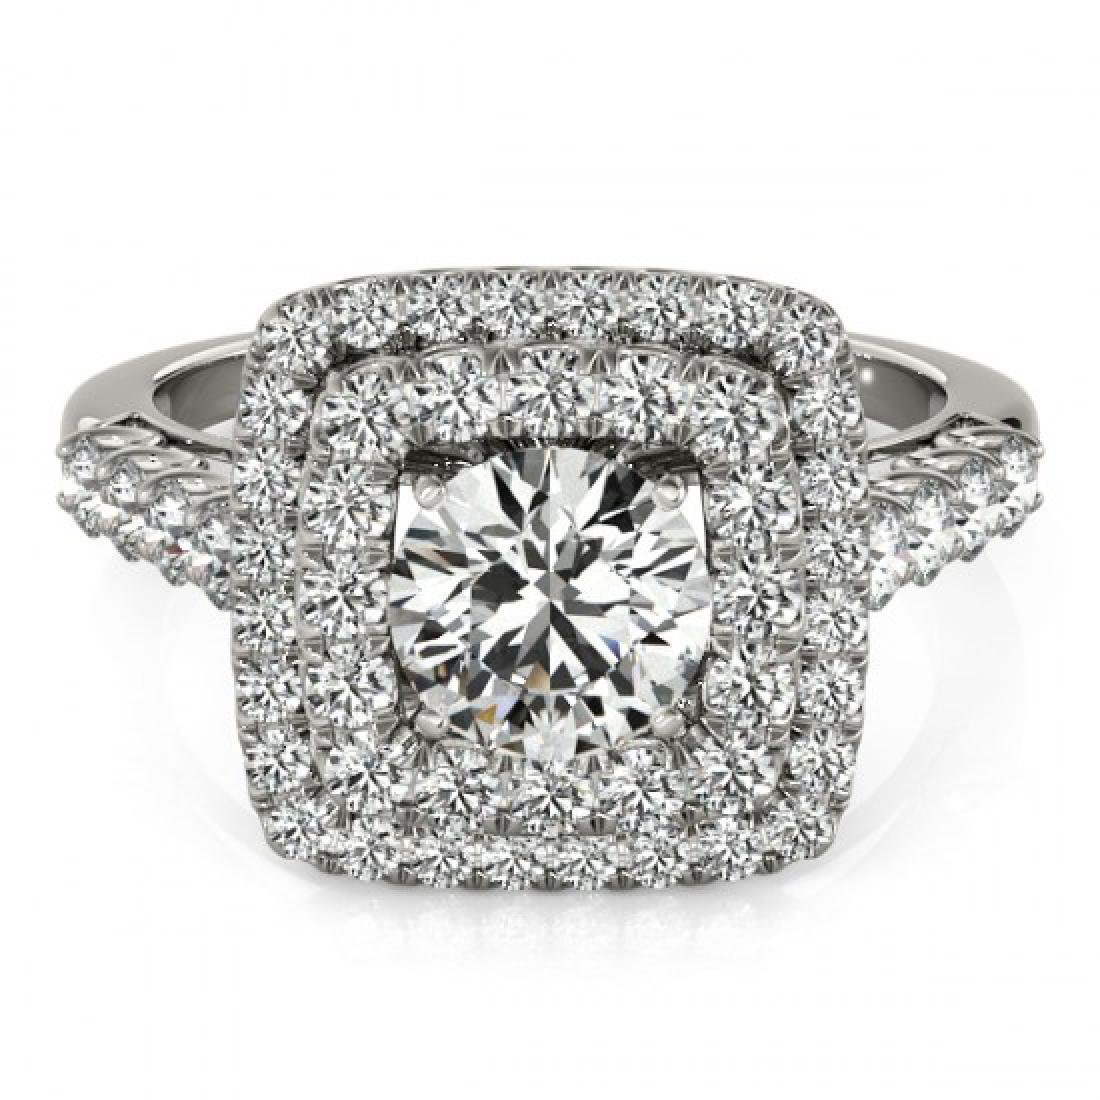 2.3 CTW Certified VS/SI Diamond Solitaire Halo Ring 14K